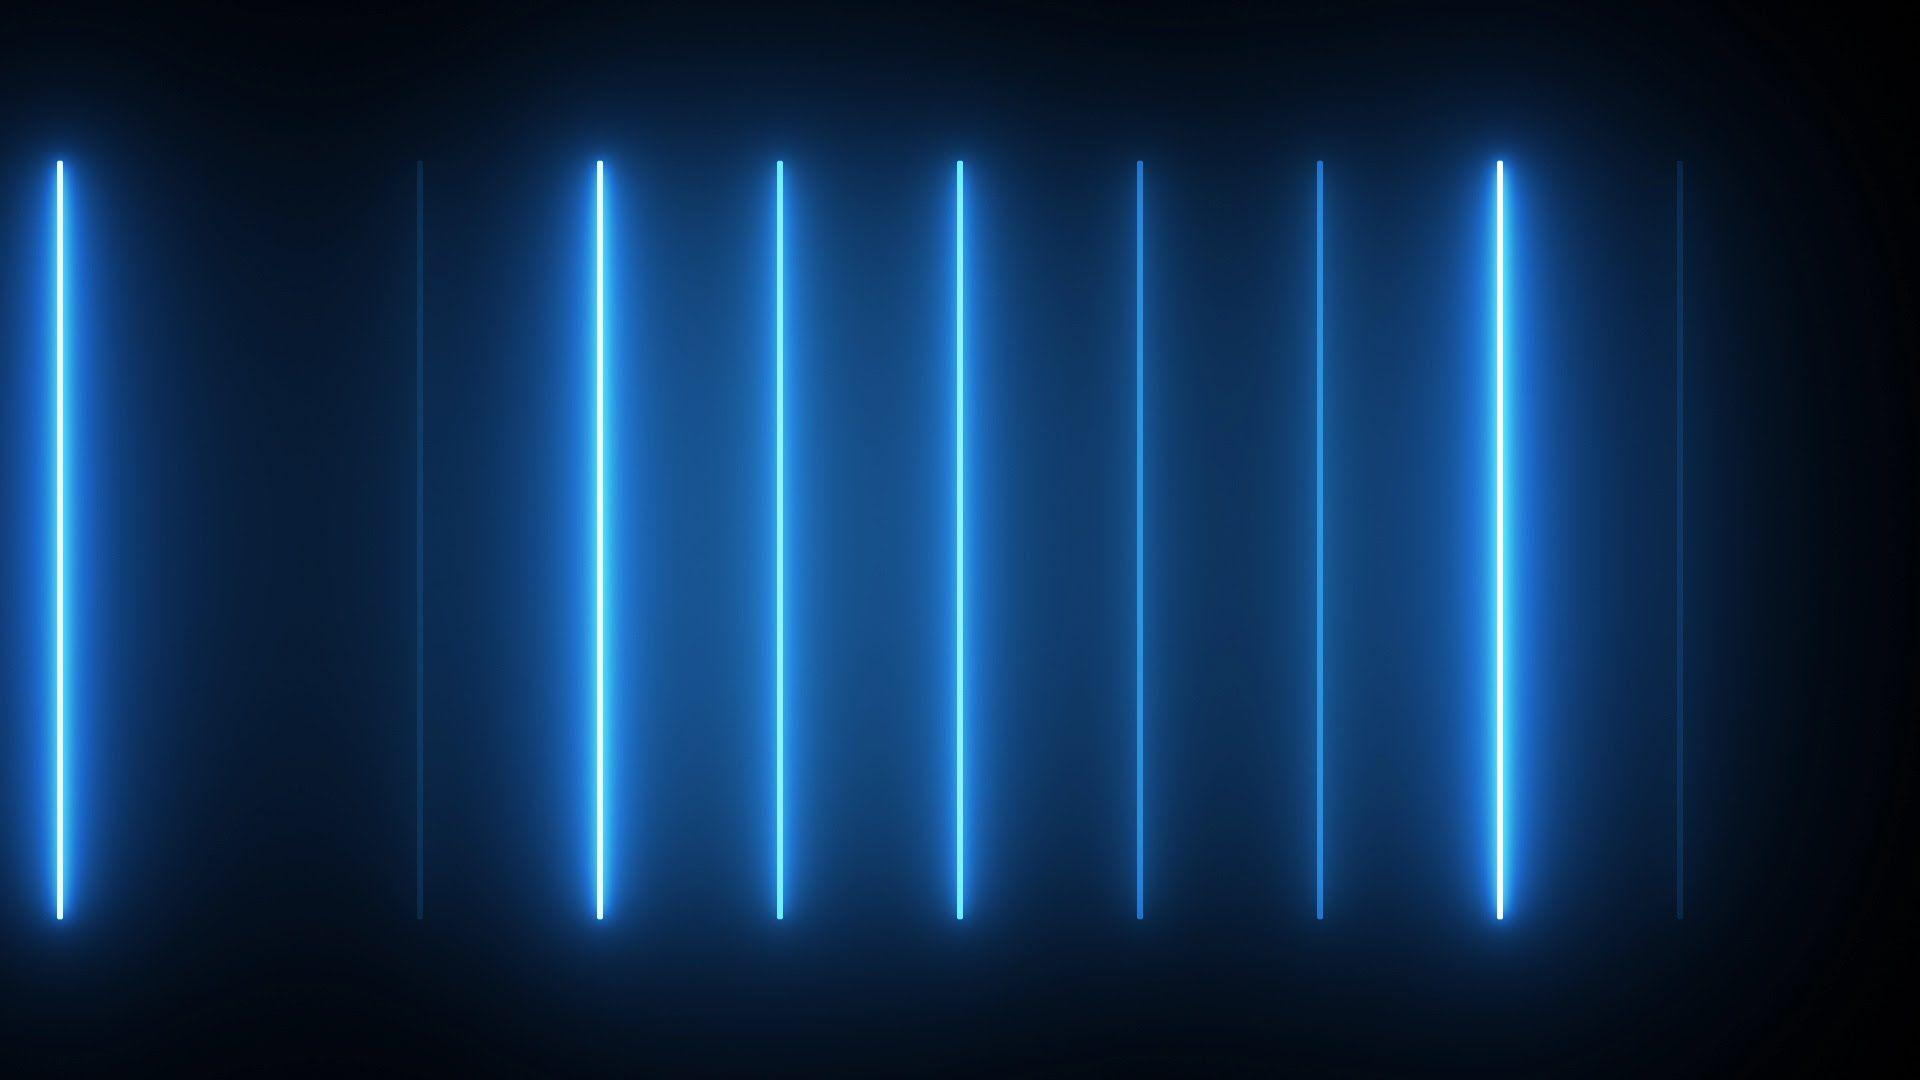 neon blue lights - HD 1920×1080